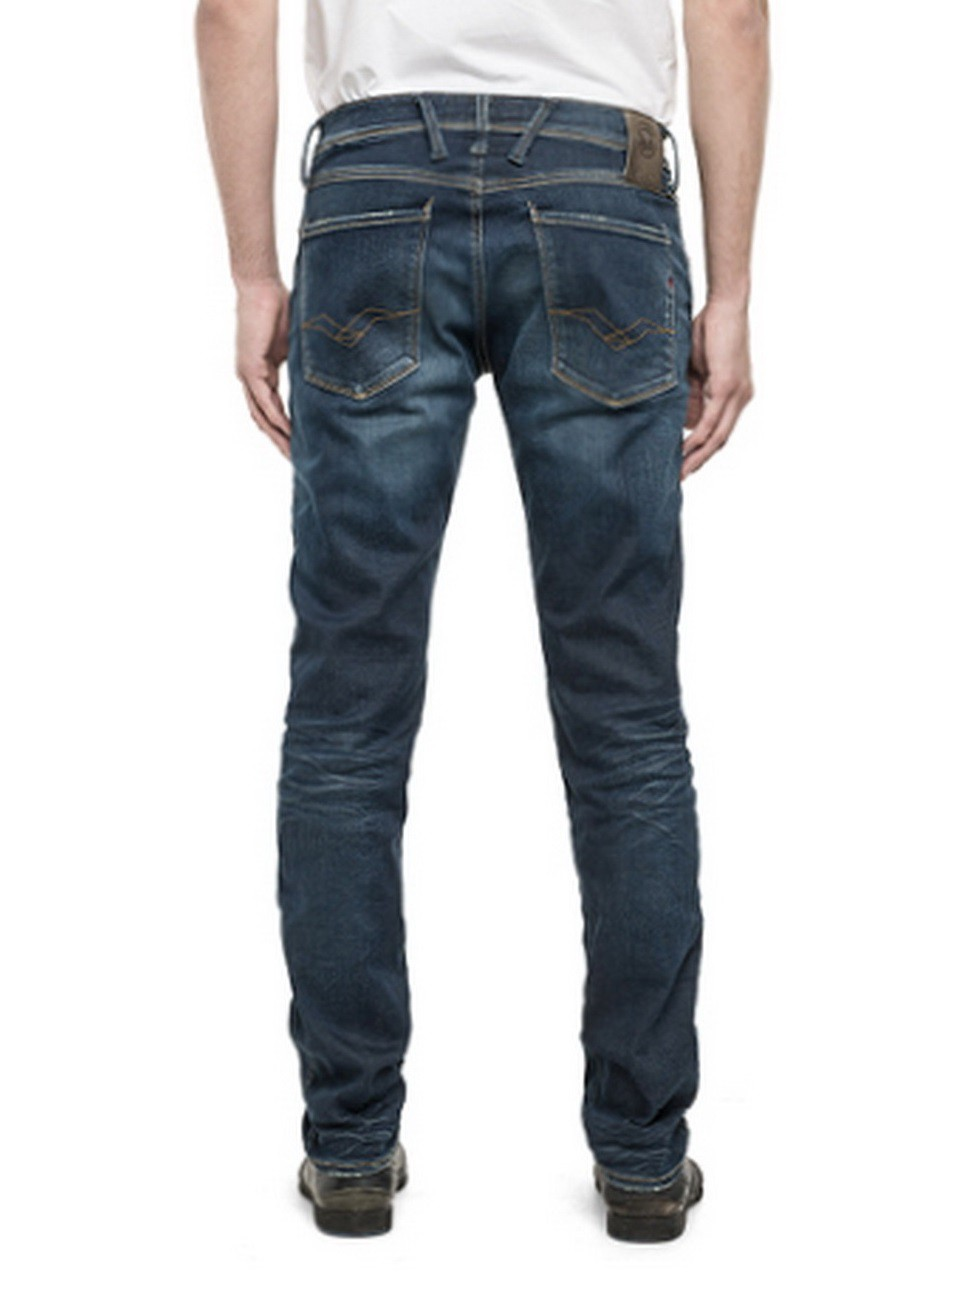 replay herren hyperflex jeans anbass m914 661 604 slim fit deep blue. Black Bedroom Furniture Sets. Home Design Ideas